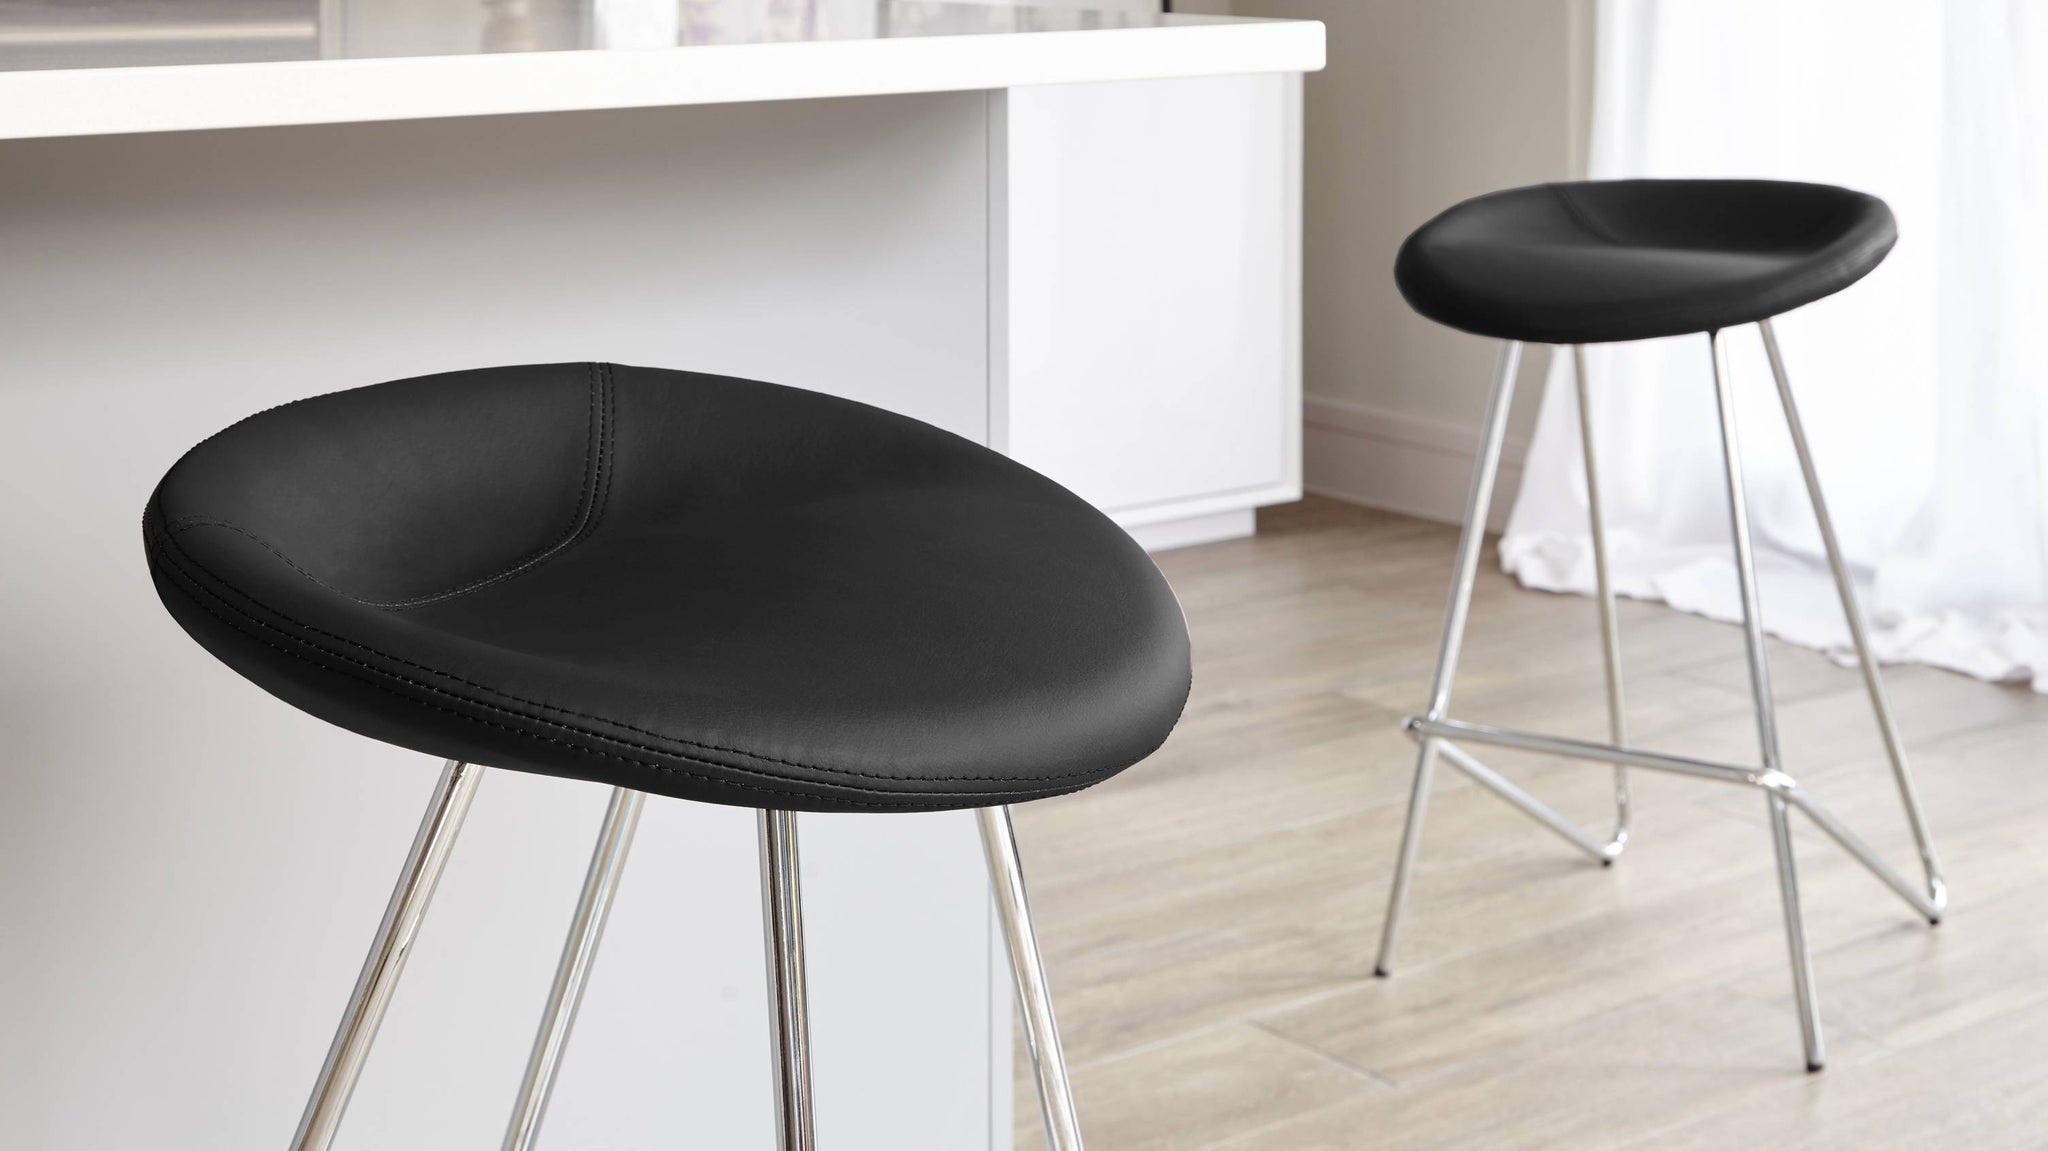 Black Fixed Height Barstools with a Chrome Base